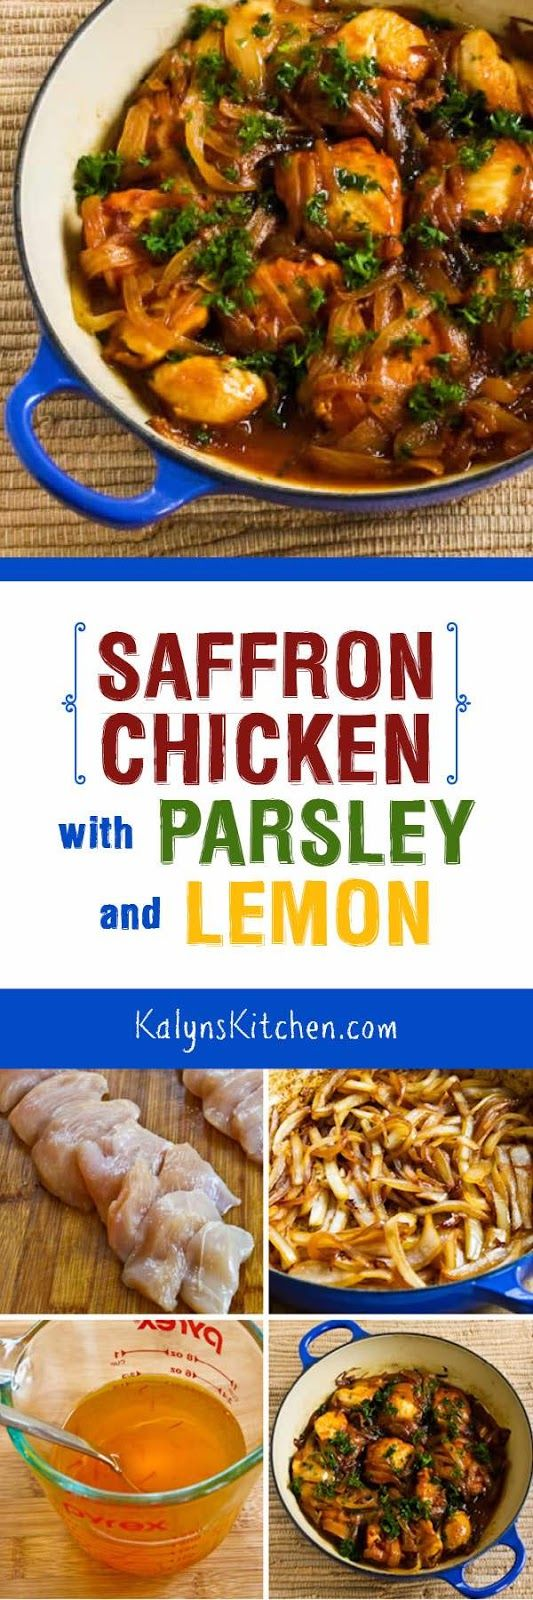 Saffron Chicken with Parsley and Lemon | Lemon, Lighter and Chicken